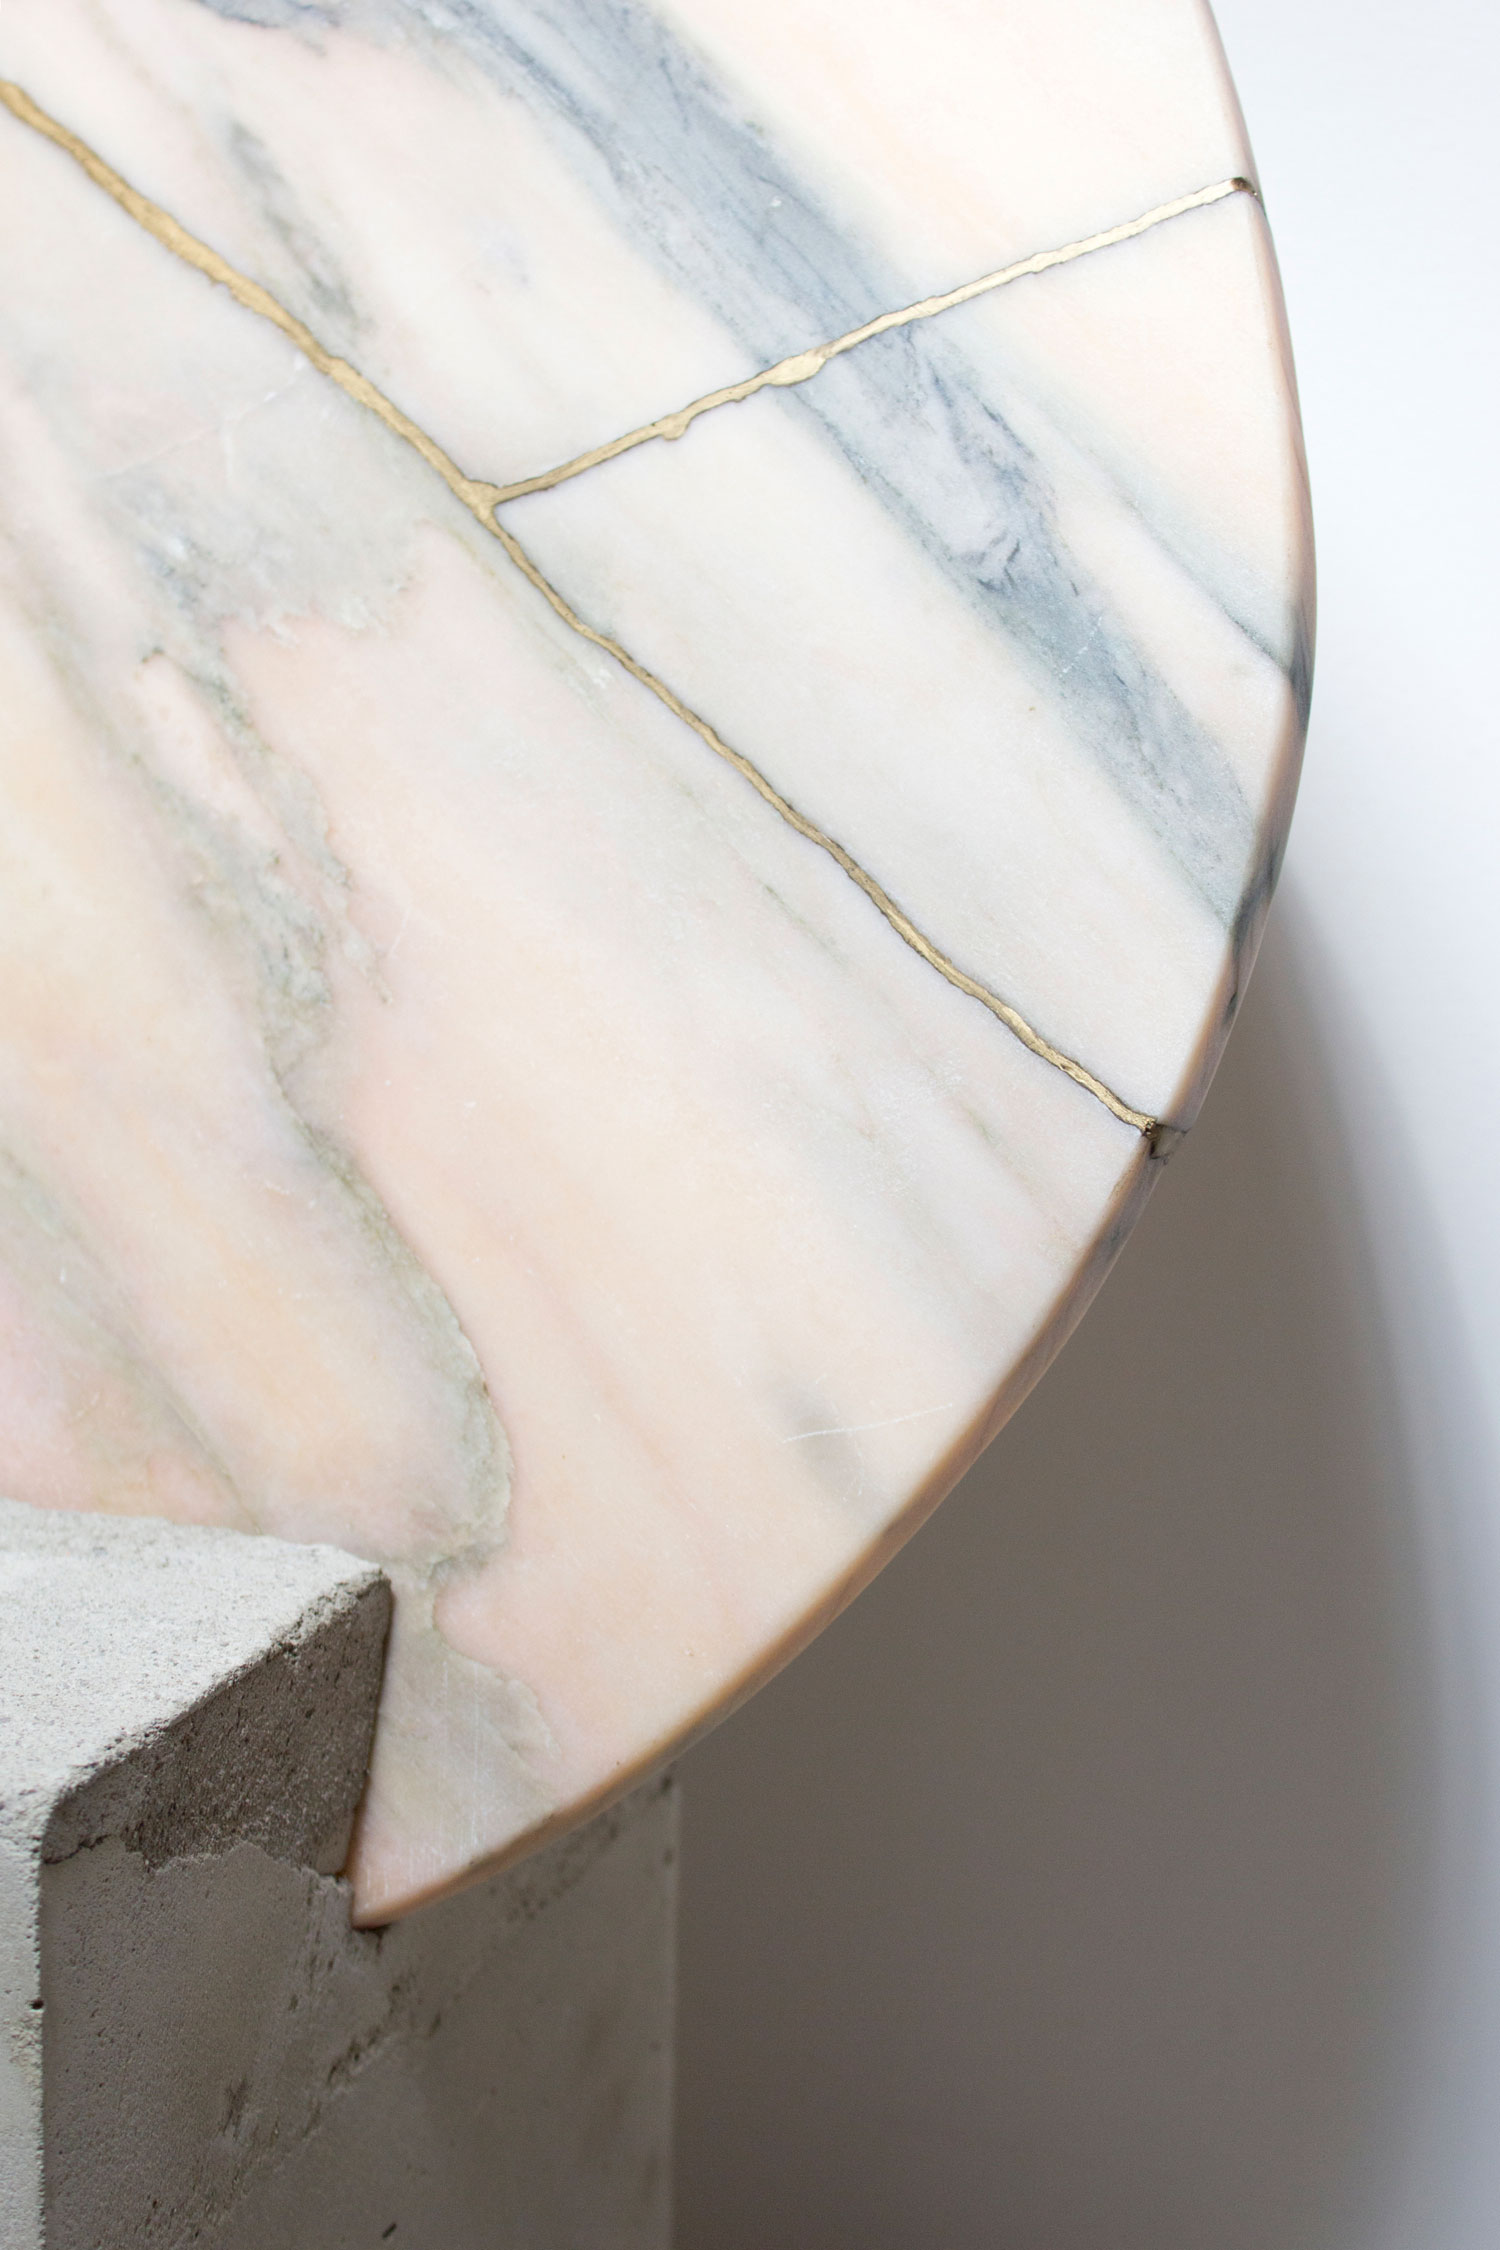 Carla Cascales' Sculpture Project, Skin | Yellowtrace